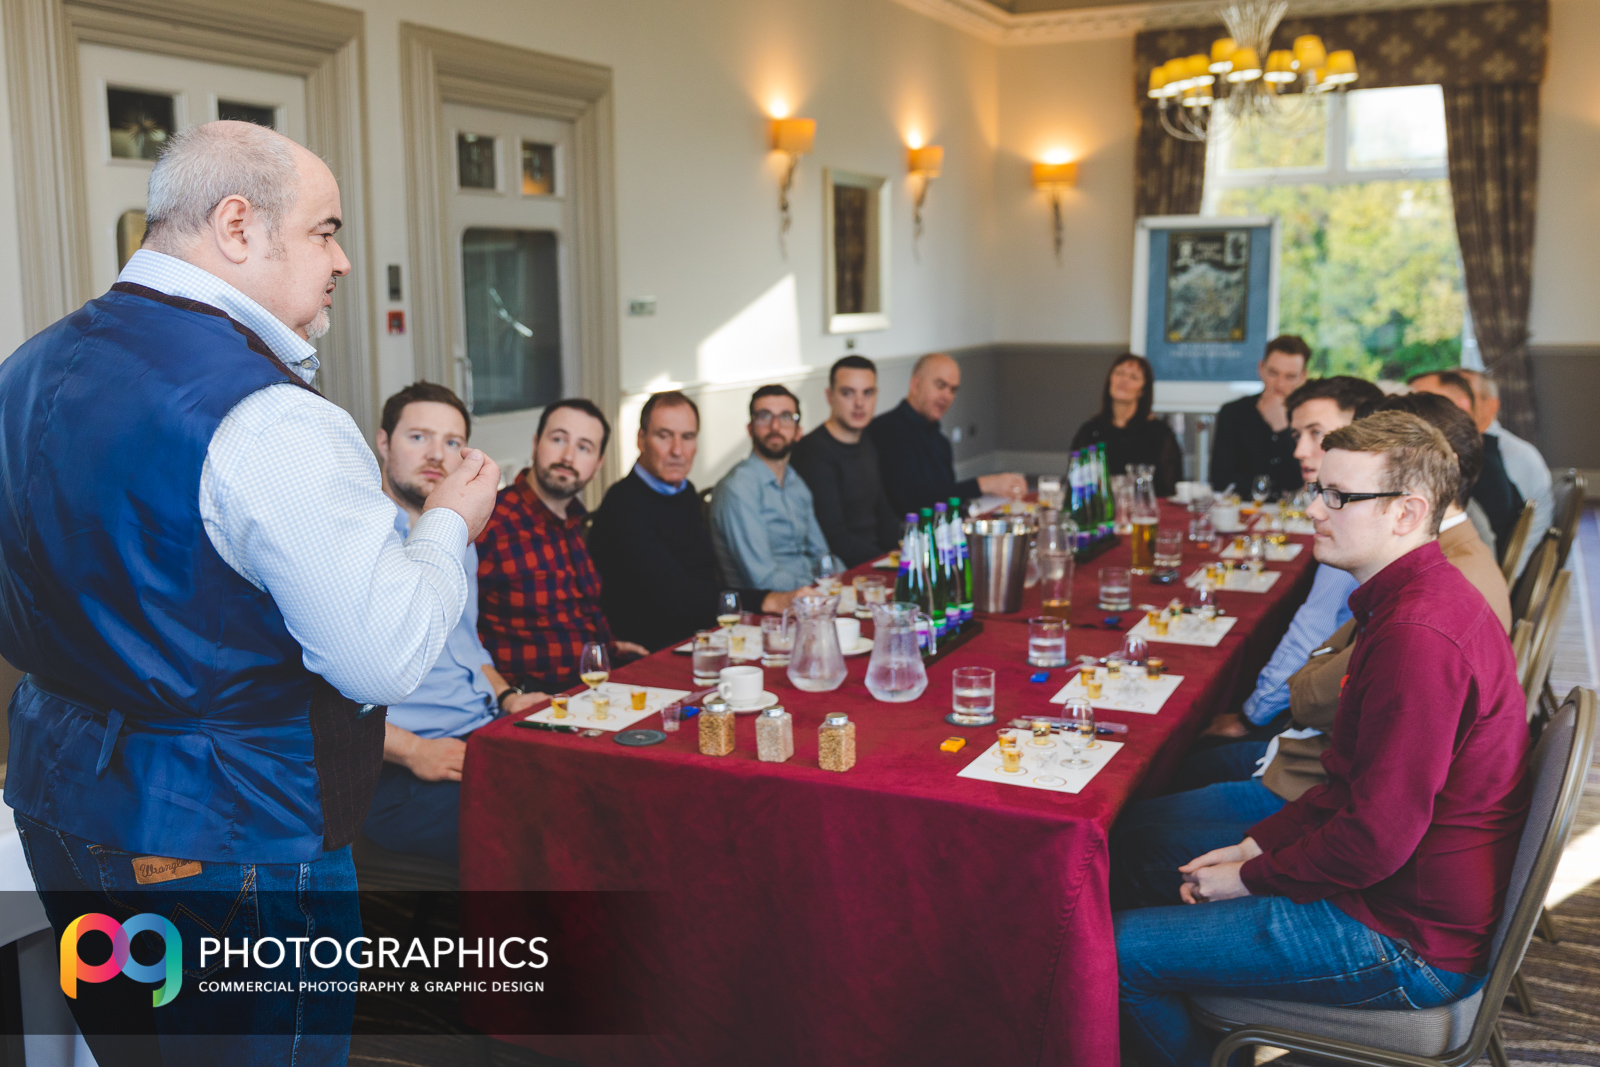 whisky-tasting-event-photography-glasgow-edinburgh-scotland-7.jpg